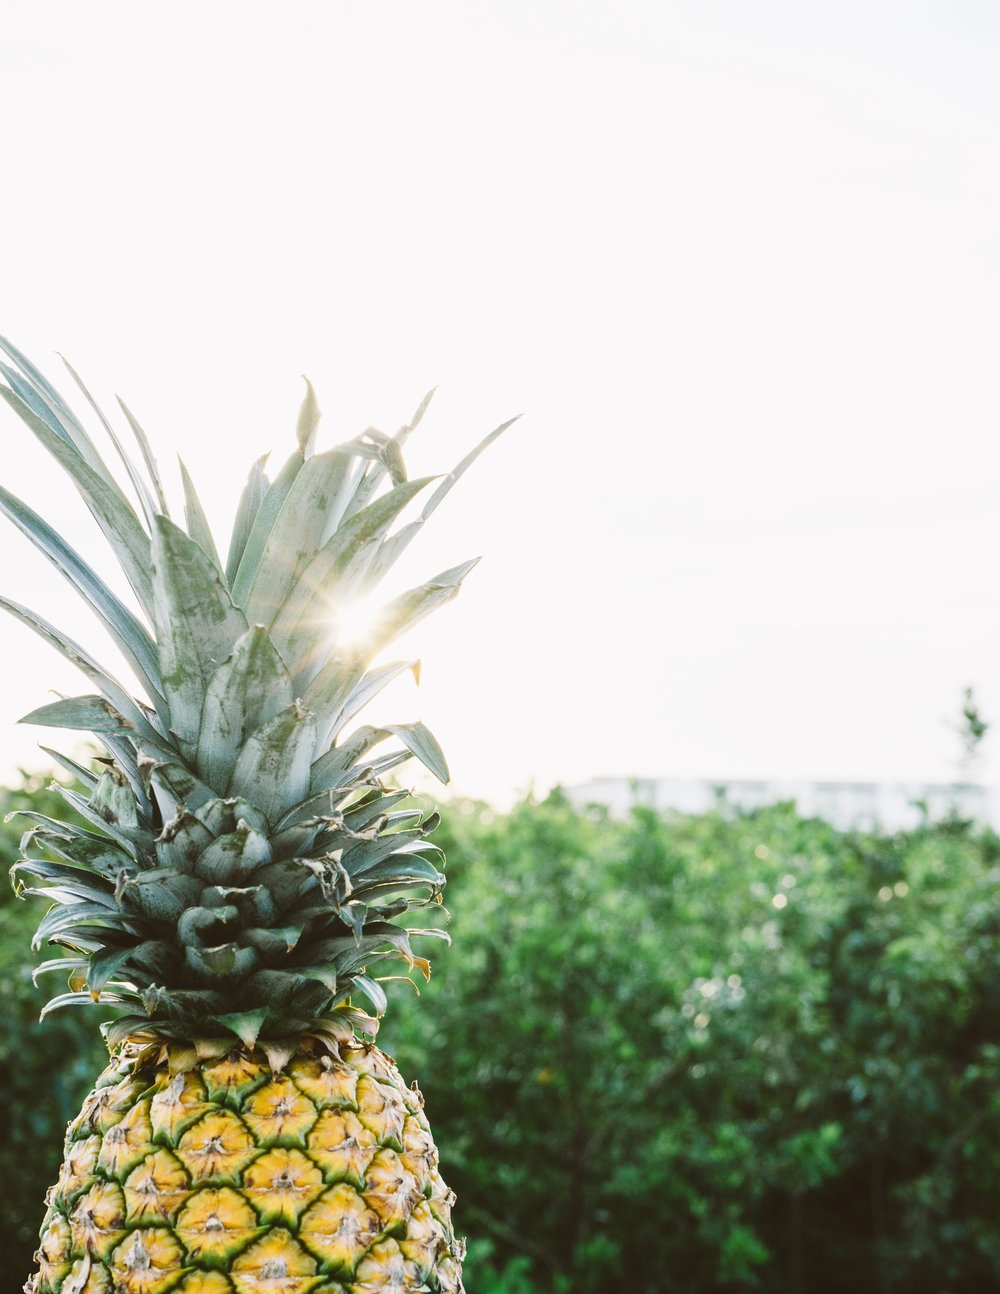 pineapple-supply-co-138081-unsplash.jpg